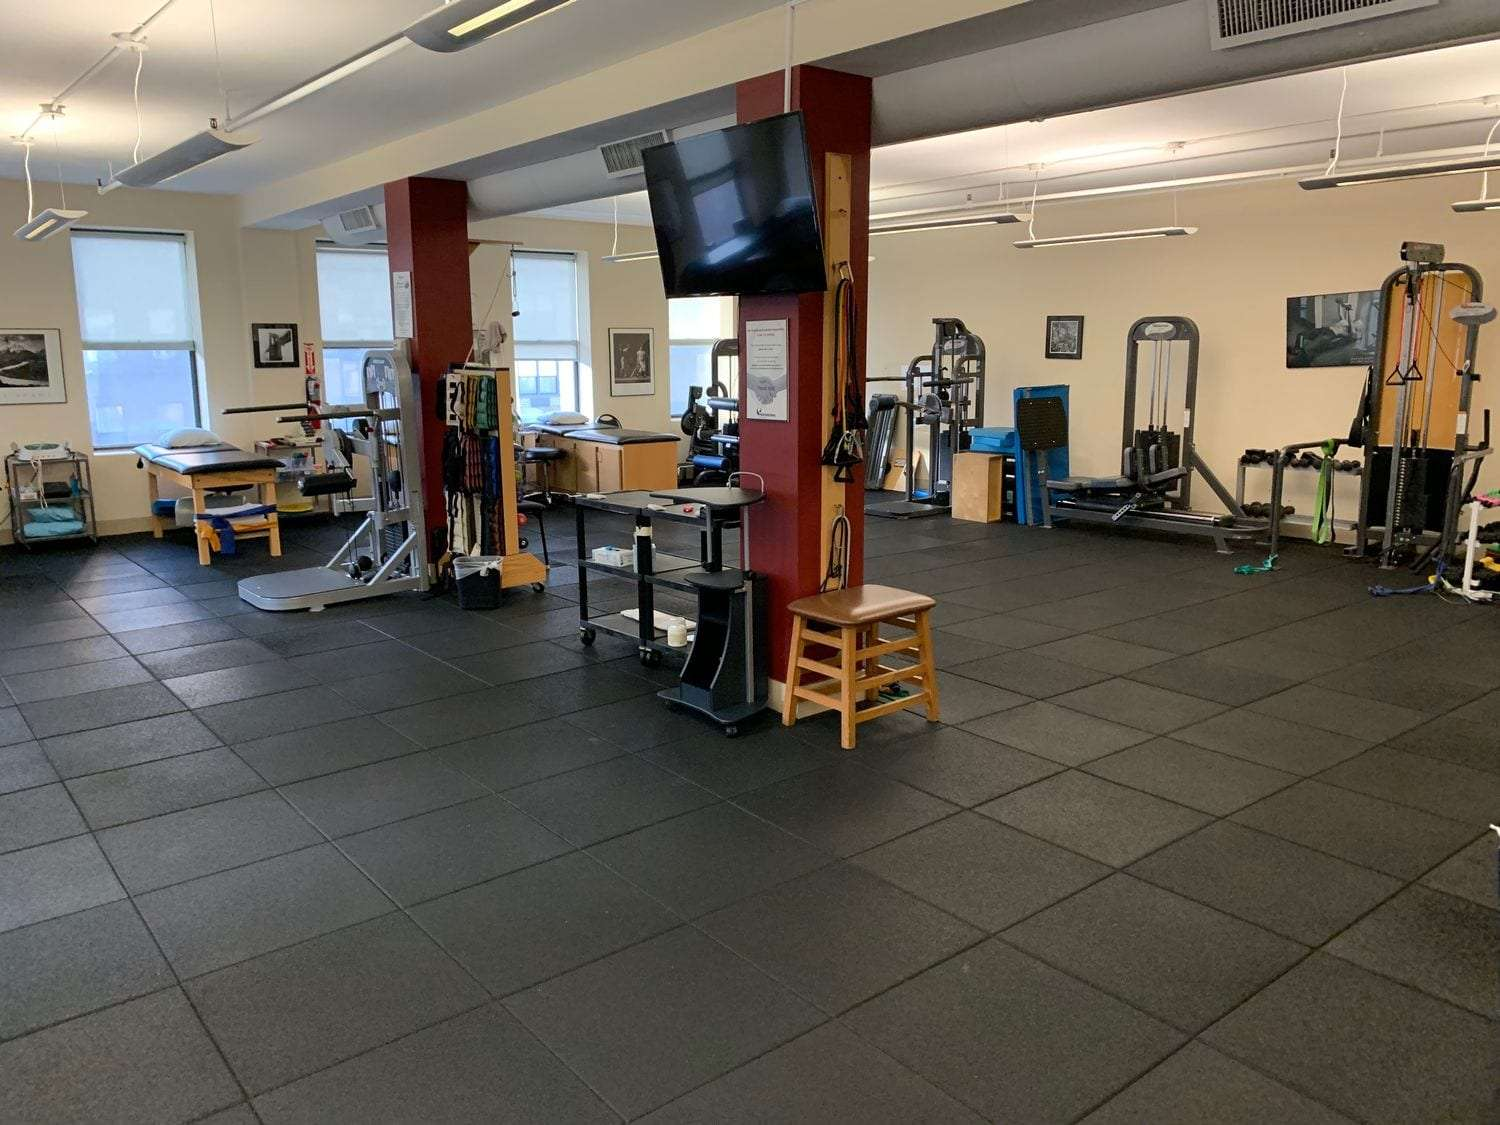 An image of the entire physical therapy clinic room at our location in Manhattan, NYC at Upper East Side on 87th st.